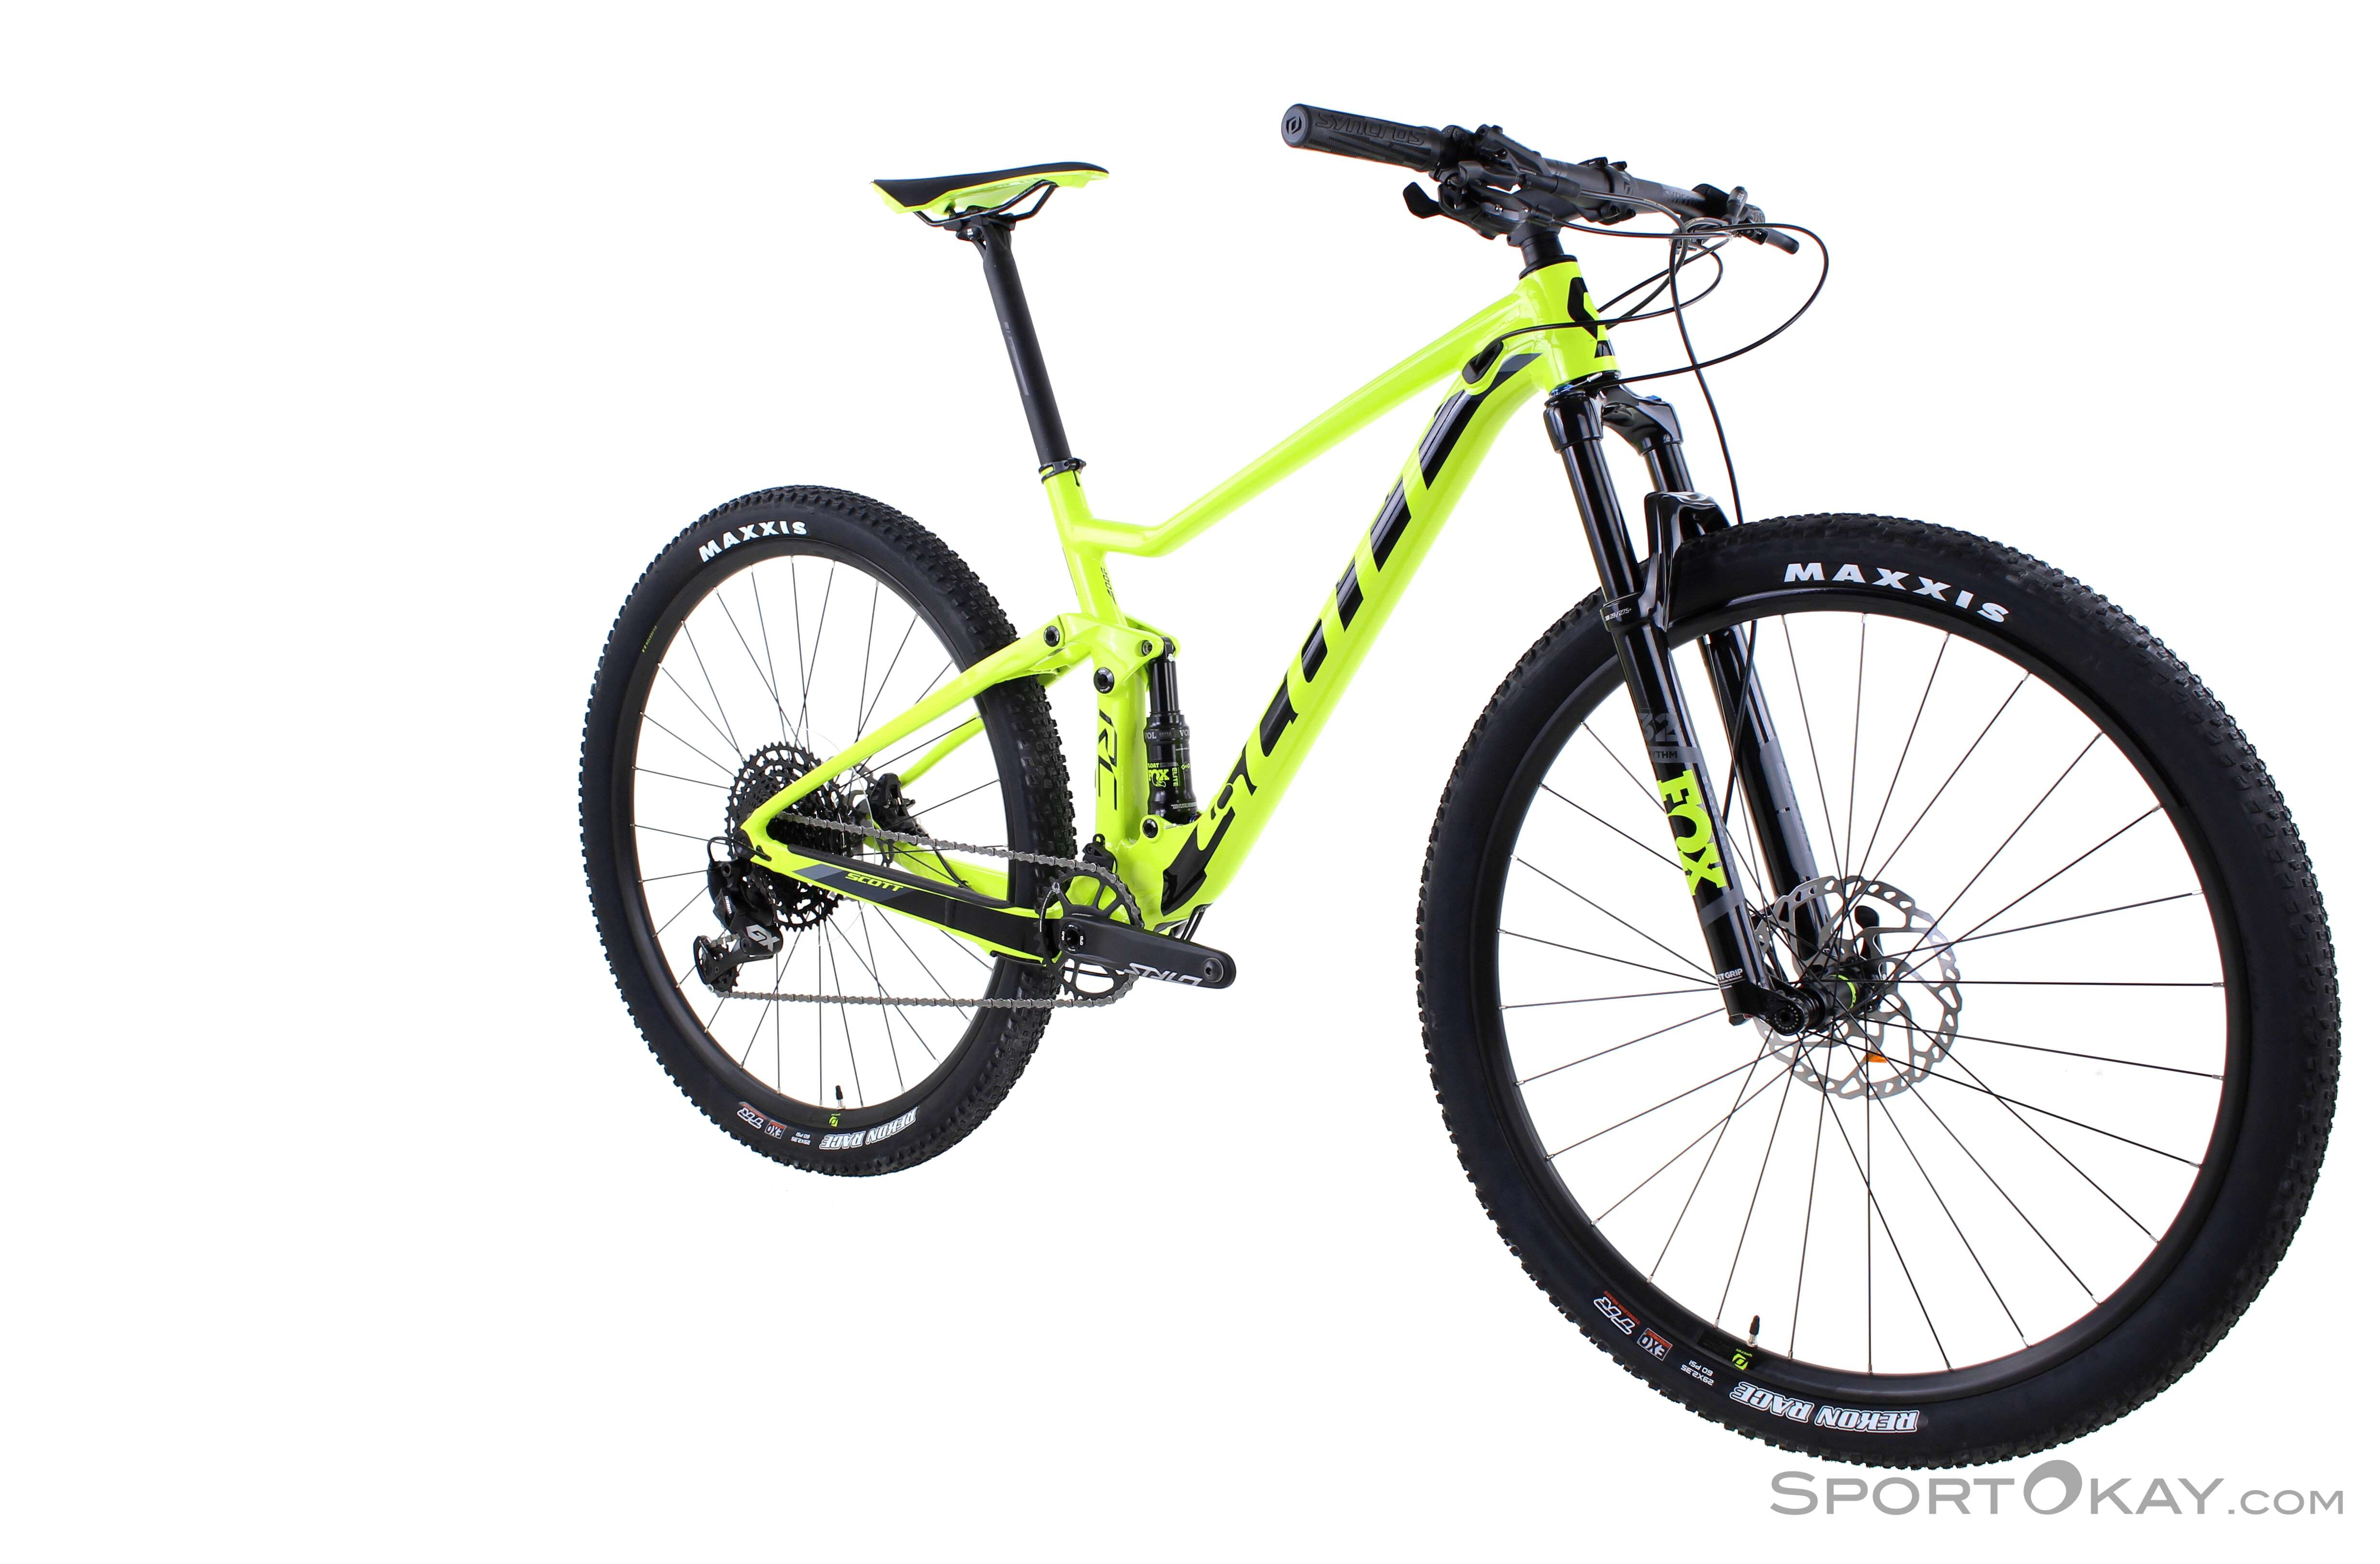 Scott Spark Rc 900 Comp 29 2019 Bicicletta Cross Country Cross